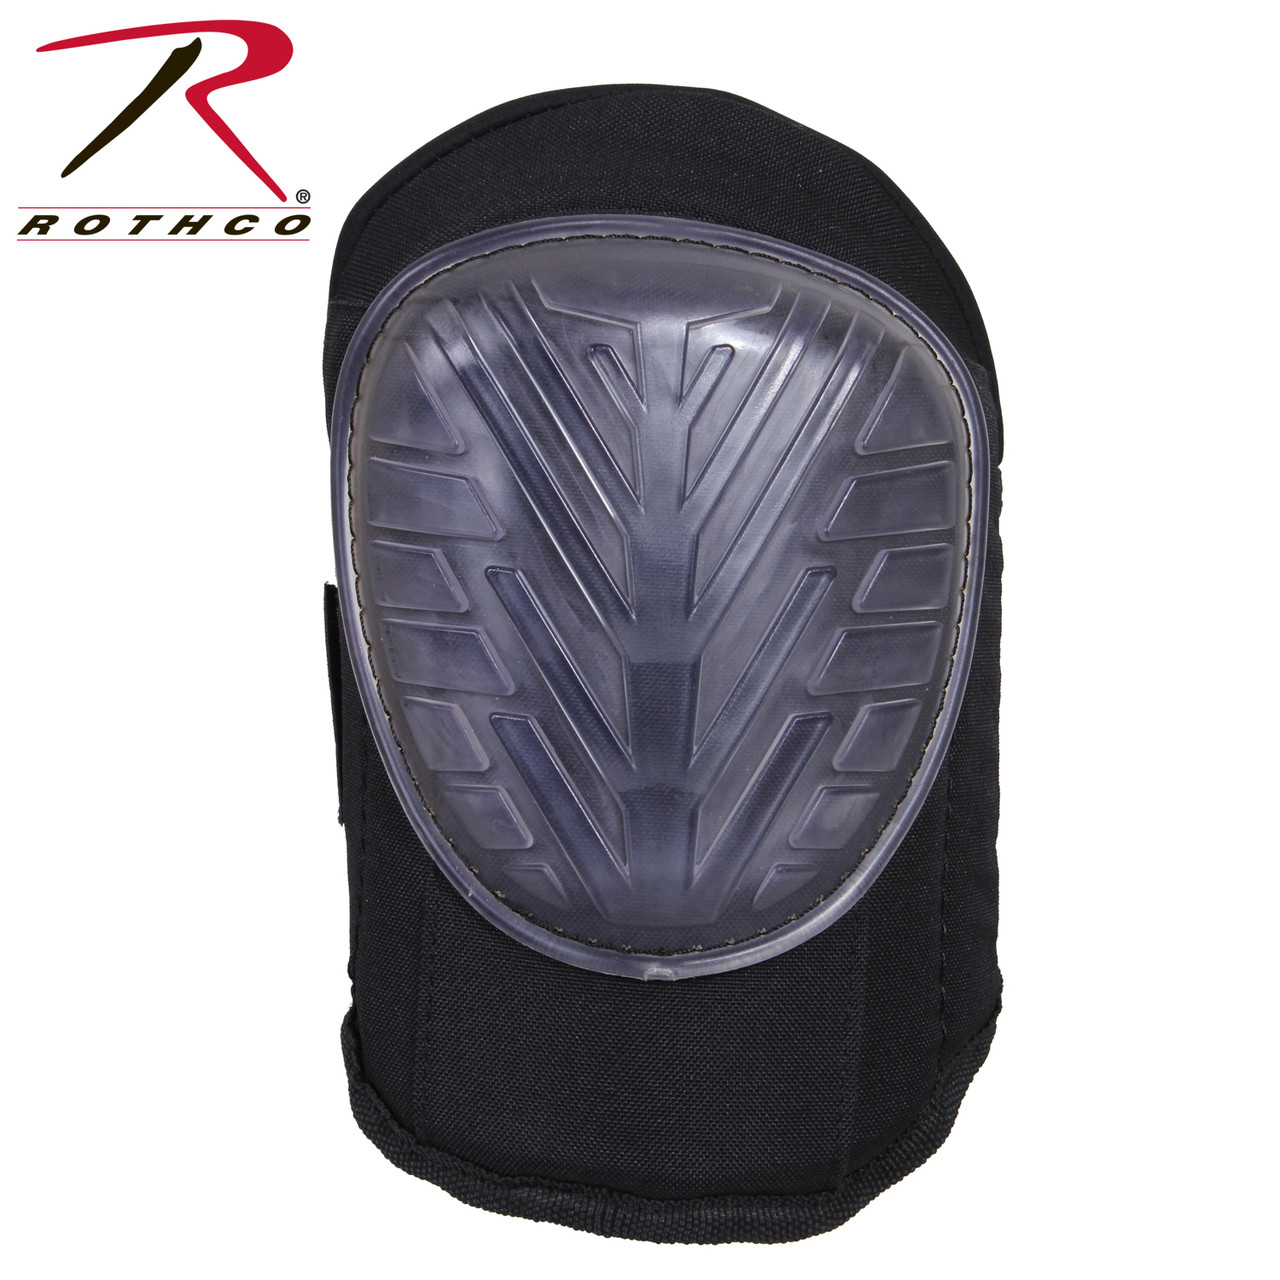 97a90519488 Rothco Multi-Purpose Gel Insert Knee Pads - Hero Outdoors